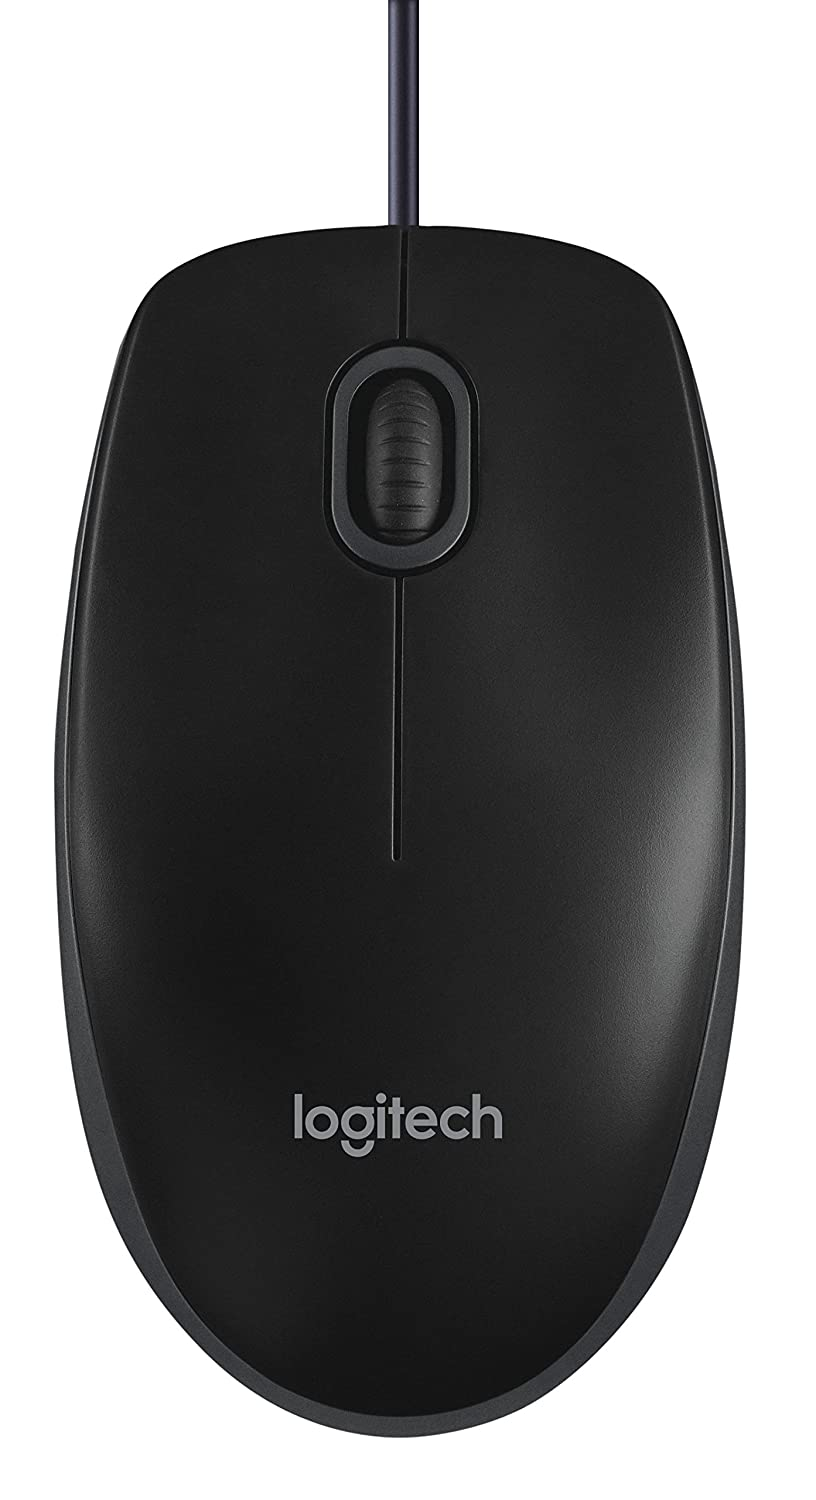 Logitech B100 Corded Mouse – Wired USB Mouse for Computers and Laptops, for Right or Left Hand Use, Black